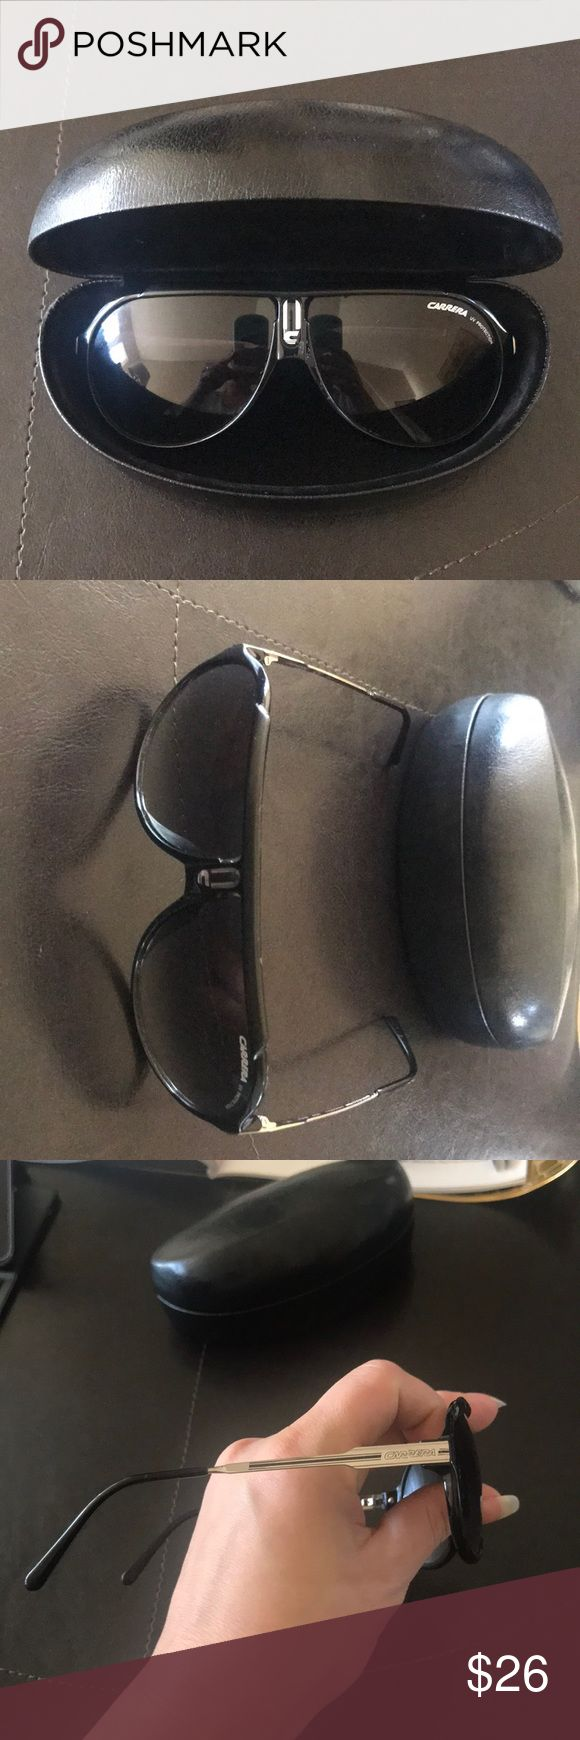 Authentic Carrera UV protection sunglasses Used condition. Still good. Very even symmetrical frames. Only flaw is pictured in last pic. Authentic Carrera glasses with UV protection. Comes with generic black case. Carrera Accessories Glasses